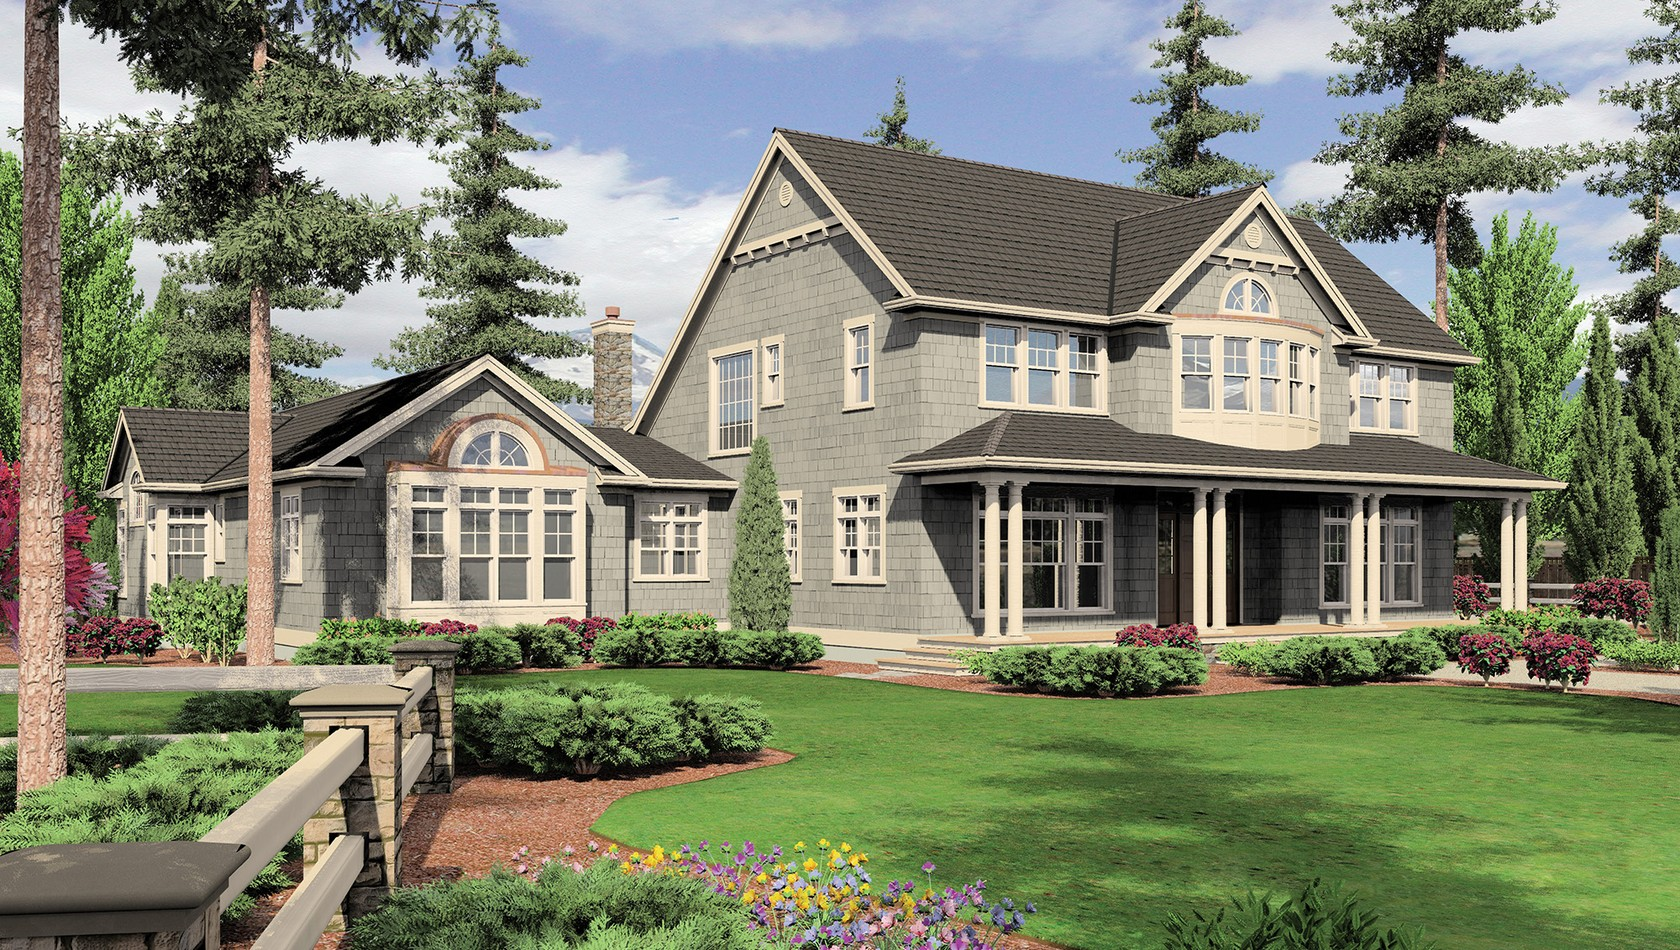 Main image for house plan B2443: The Seligman